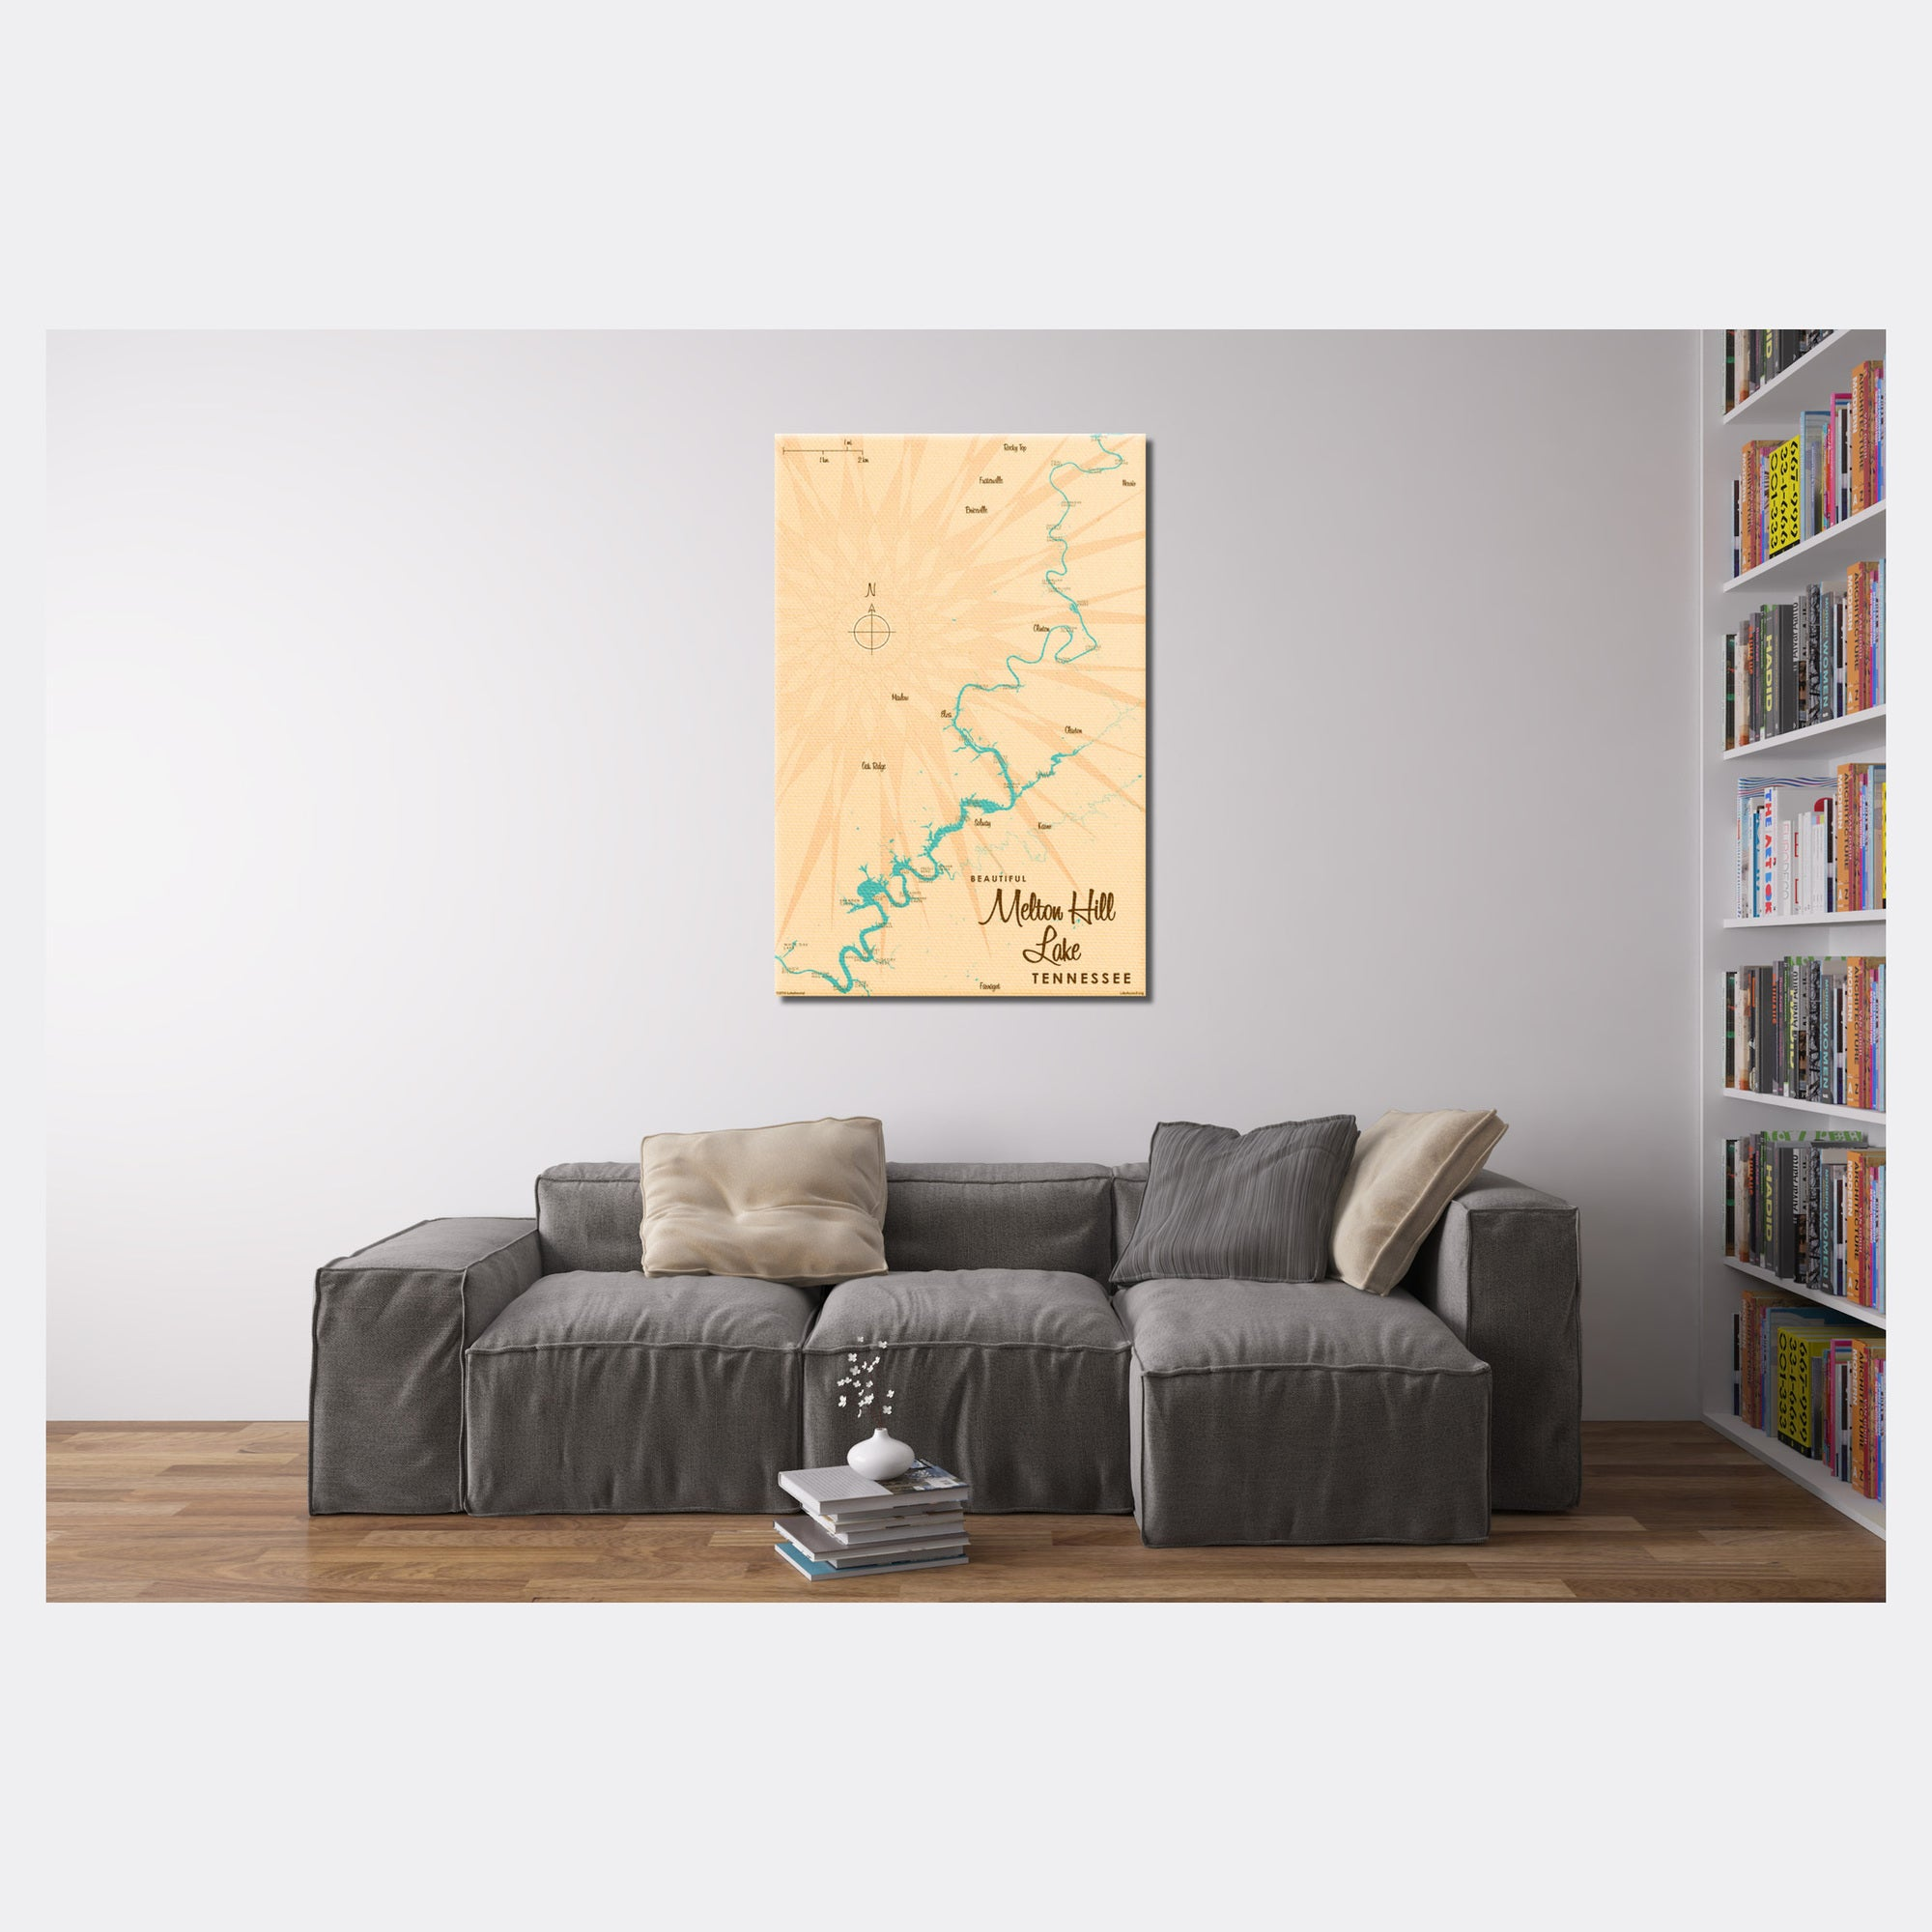 Melton Hill Lake Tennessee, Canvas Print